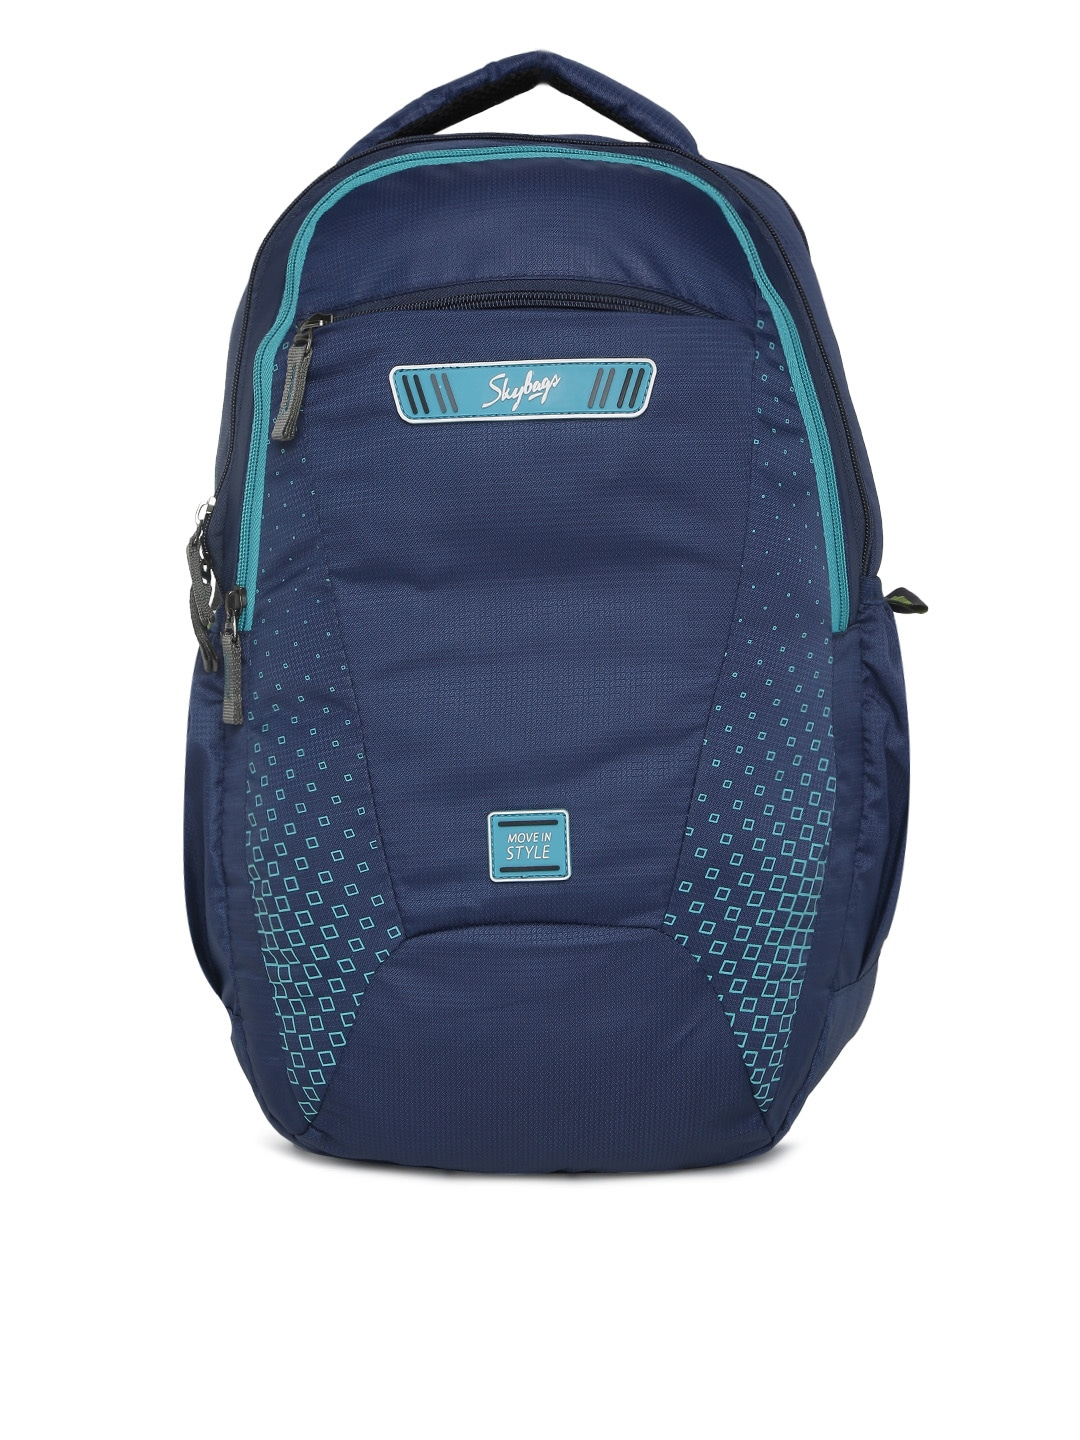 40403c9e94a Skybags - Buy Skybags Online at Best Price in India   Myntra